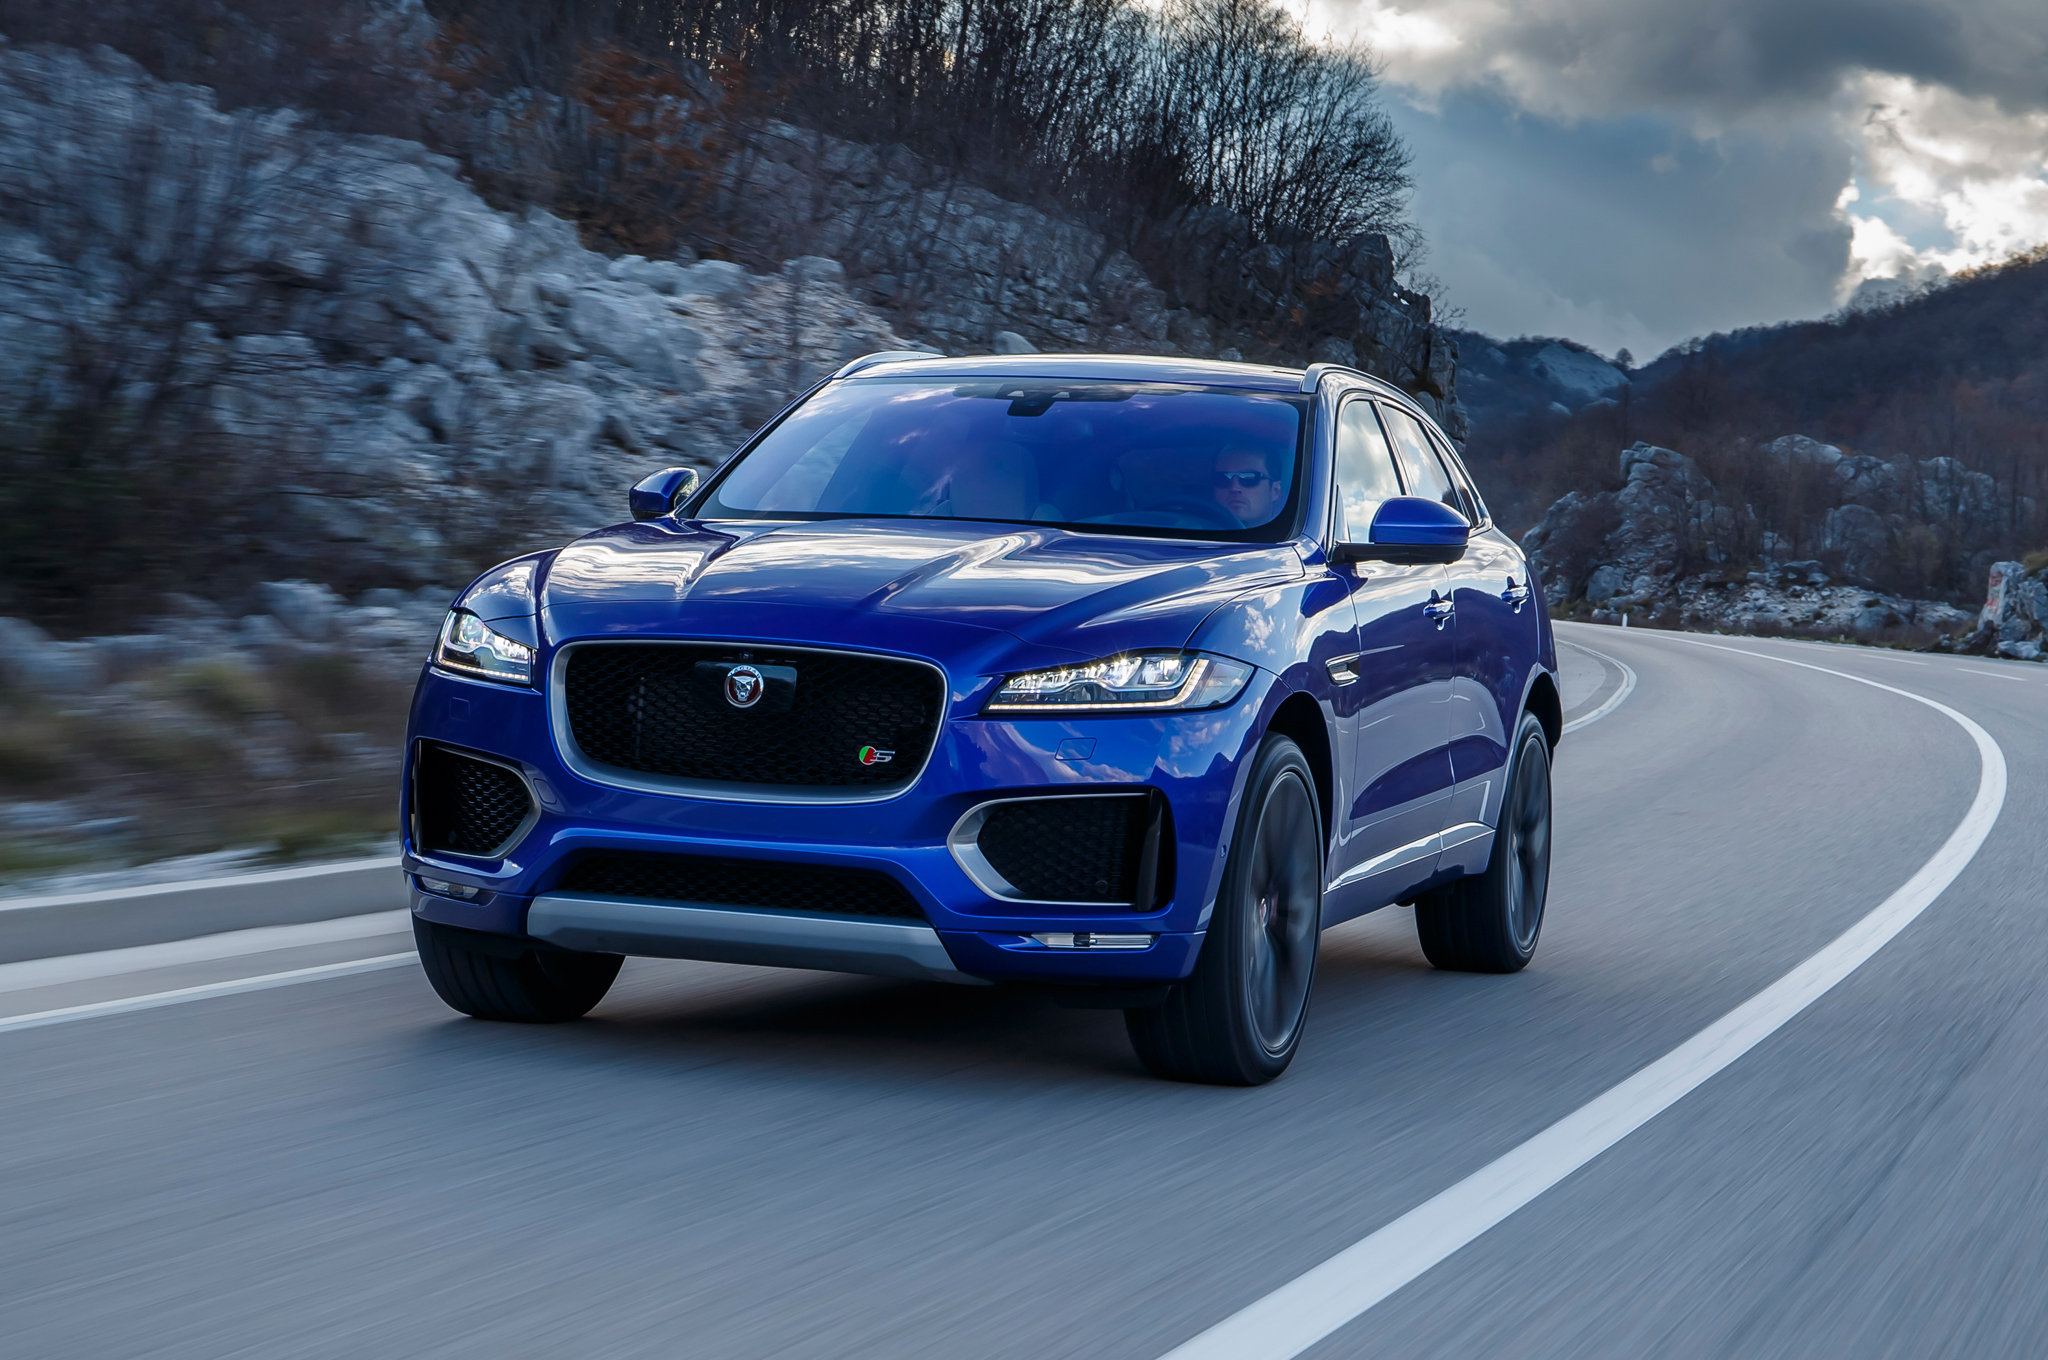 f and new frankfurt engines specs debut prices jaguar auto price express img suv pace